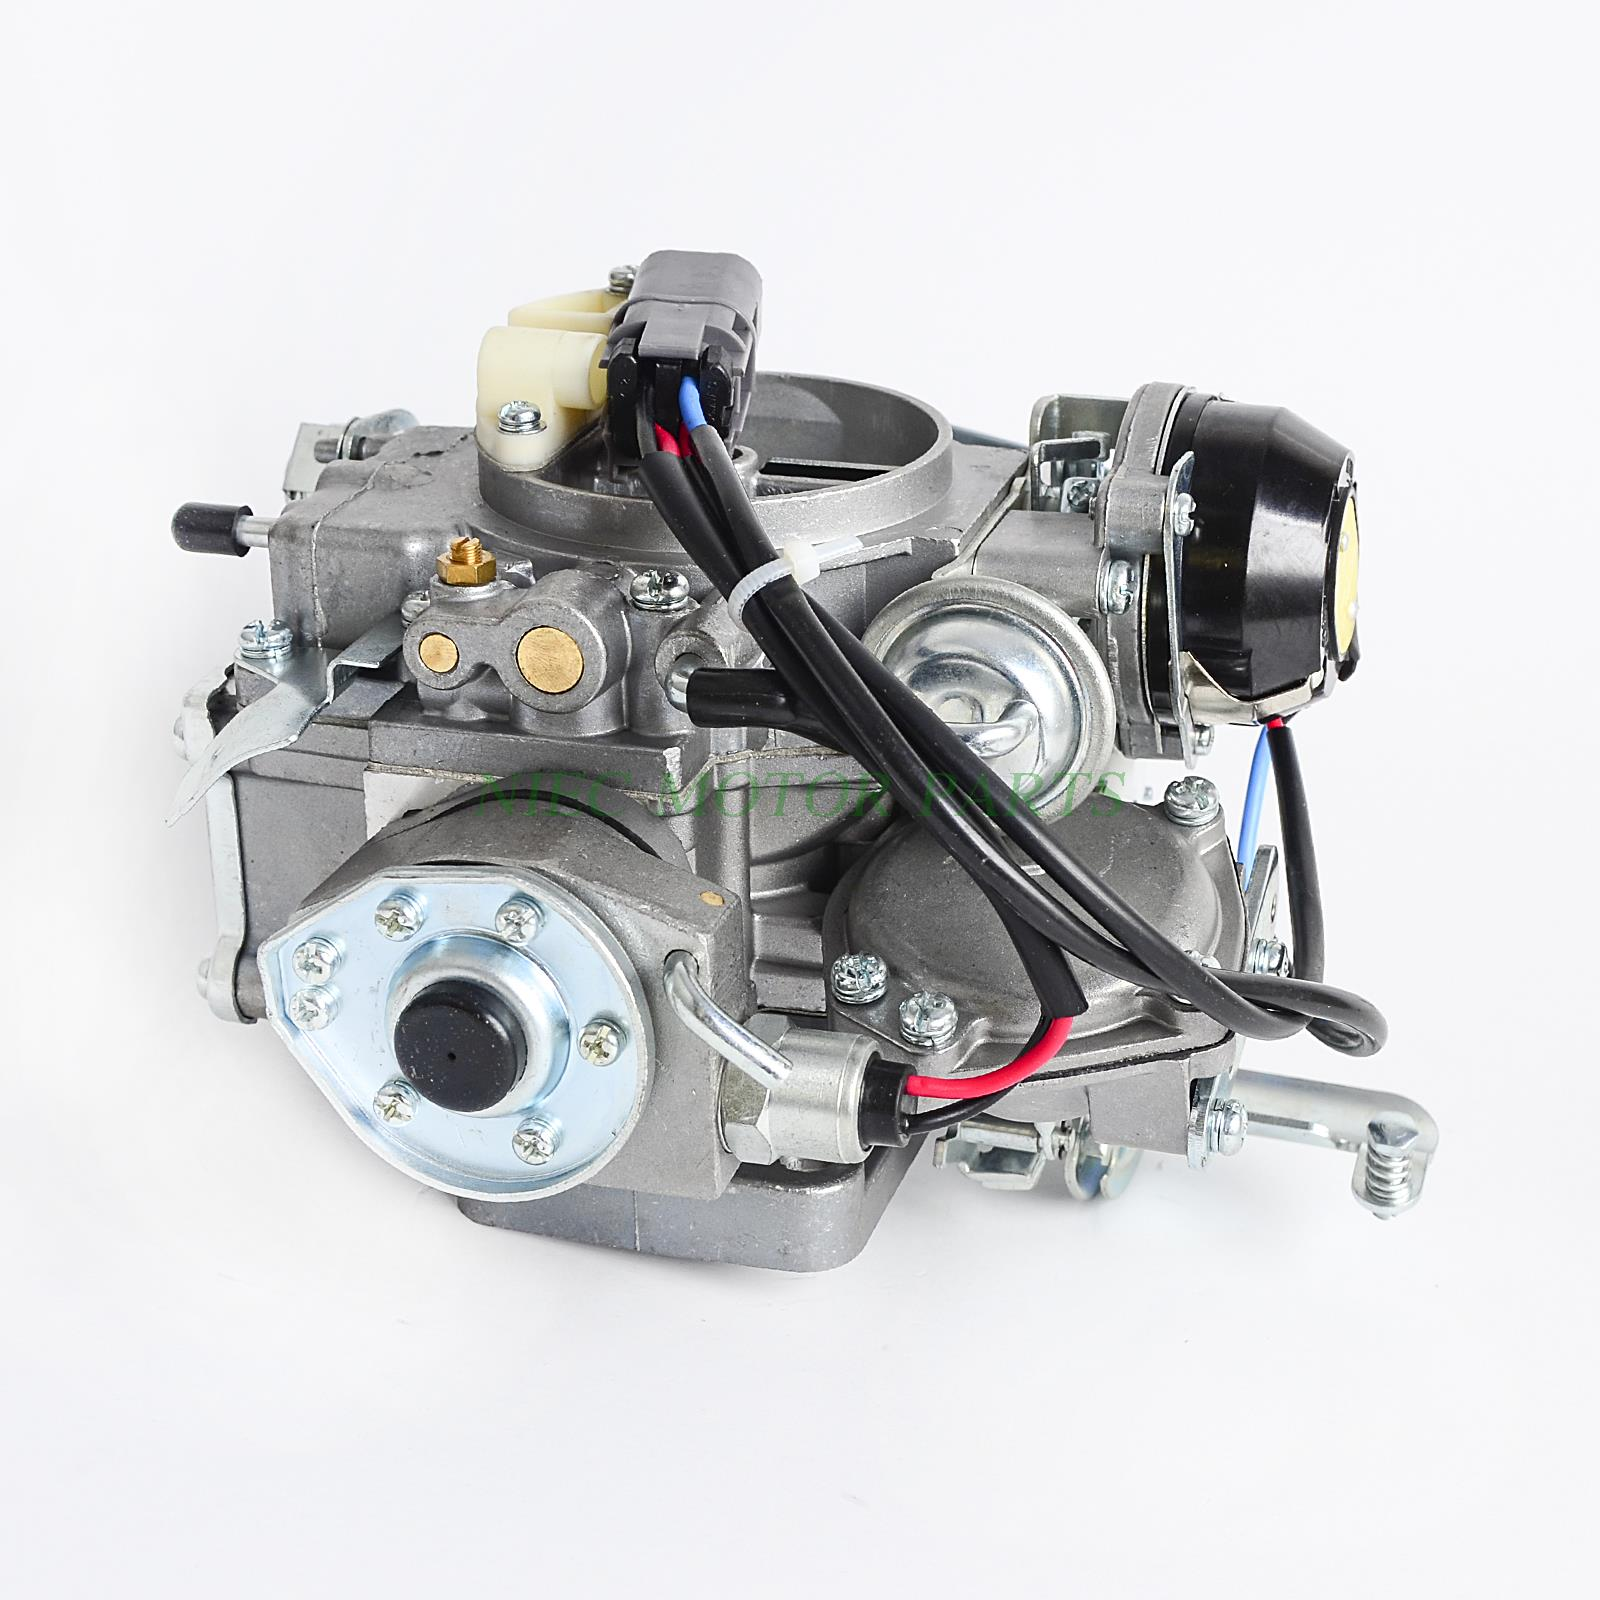 CARBURETTOR CARBY CARBIE VERY RARE FOR NISSAN PATROL GQ Y60 TB42 4 2L RB30 3 0L